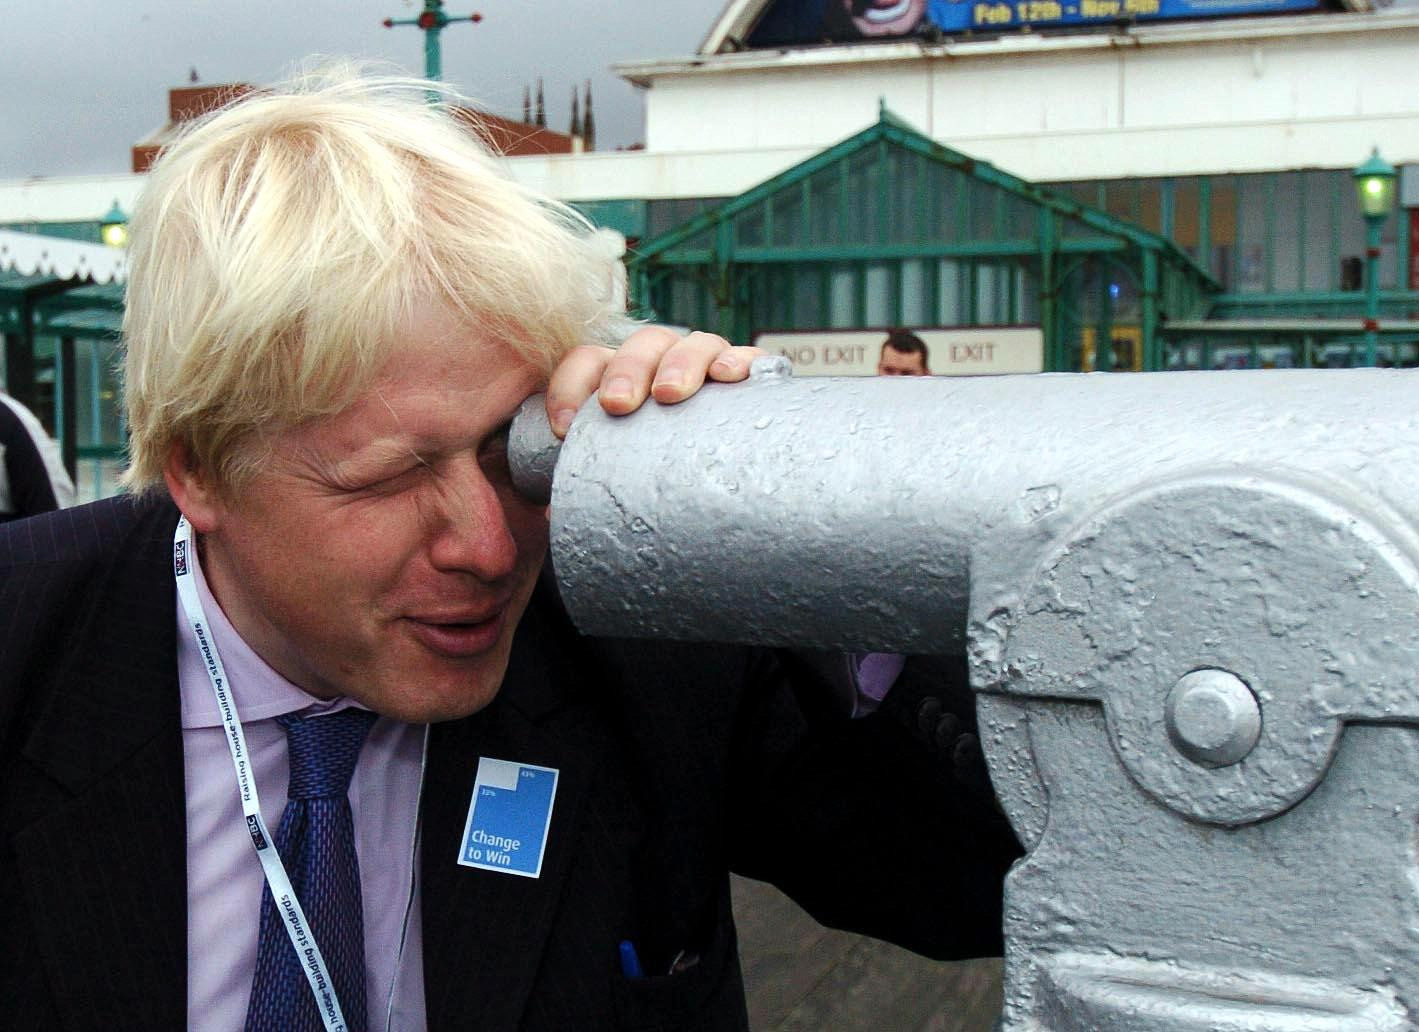 """Boris Johnson the Conservative MP for Henley looks through a telescope on the North Pier at Blackpool, Monday 3 October 2005 on the first day of the Conservative Conference. Colourful Tory MP Boris Johnson today said he found the idea that Gordon Brown could defeat any leader of the Conservative Party in a General Election """"absolutely unbelievable"""". The member for Henley and Spectator editor, who is backing David Cameron's leadership bid, said that he was not in favour of would-be leaders trying to mimic Tony Blair but called for a new approach to Conservatism. Speaking at a conference fringe meeting, he predicted success for the Tories next time the country goes to polls. He said: """"I think the Tories are going to win the next election. See PA Story TORY Boris. PRESS ASSOCIATION Photo. Photo credit should read: PA."""